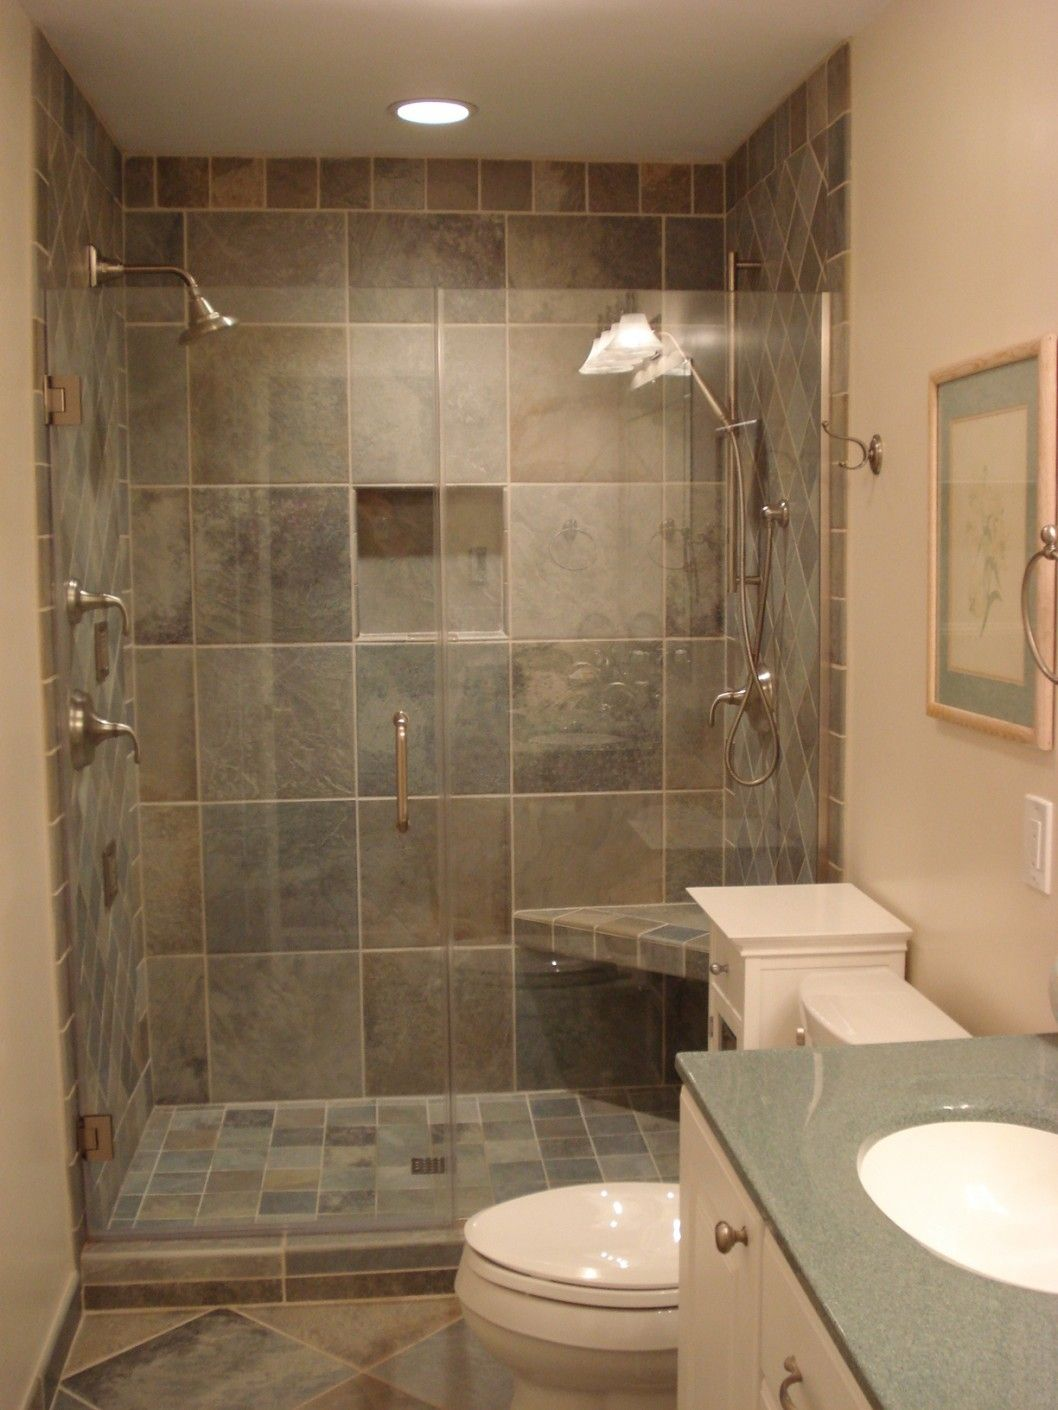 Bathroom Remodel Cost Raleigh best of ideas, remodel bathroom tub and how to remodel my bathroom